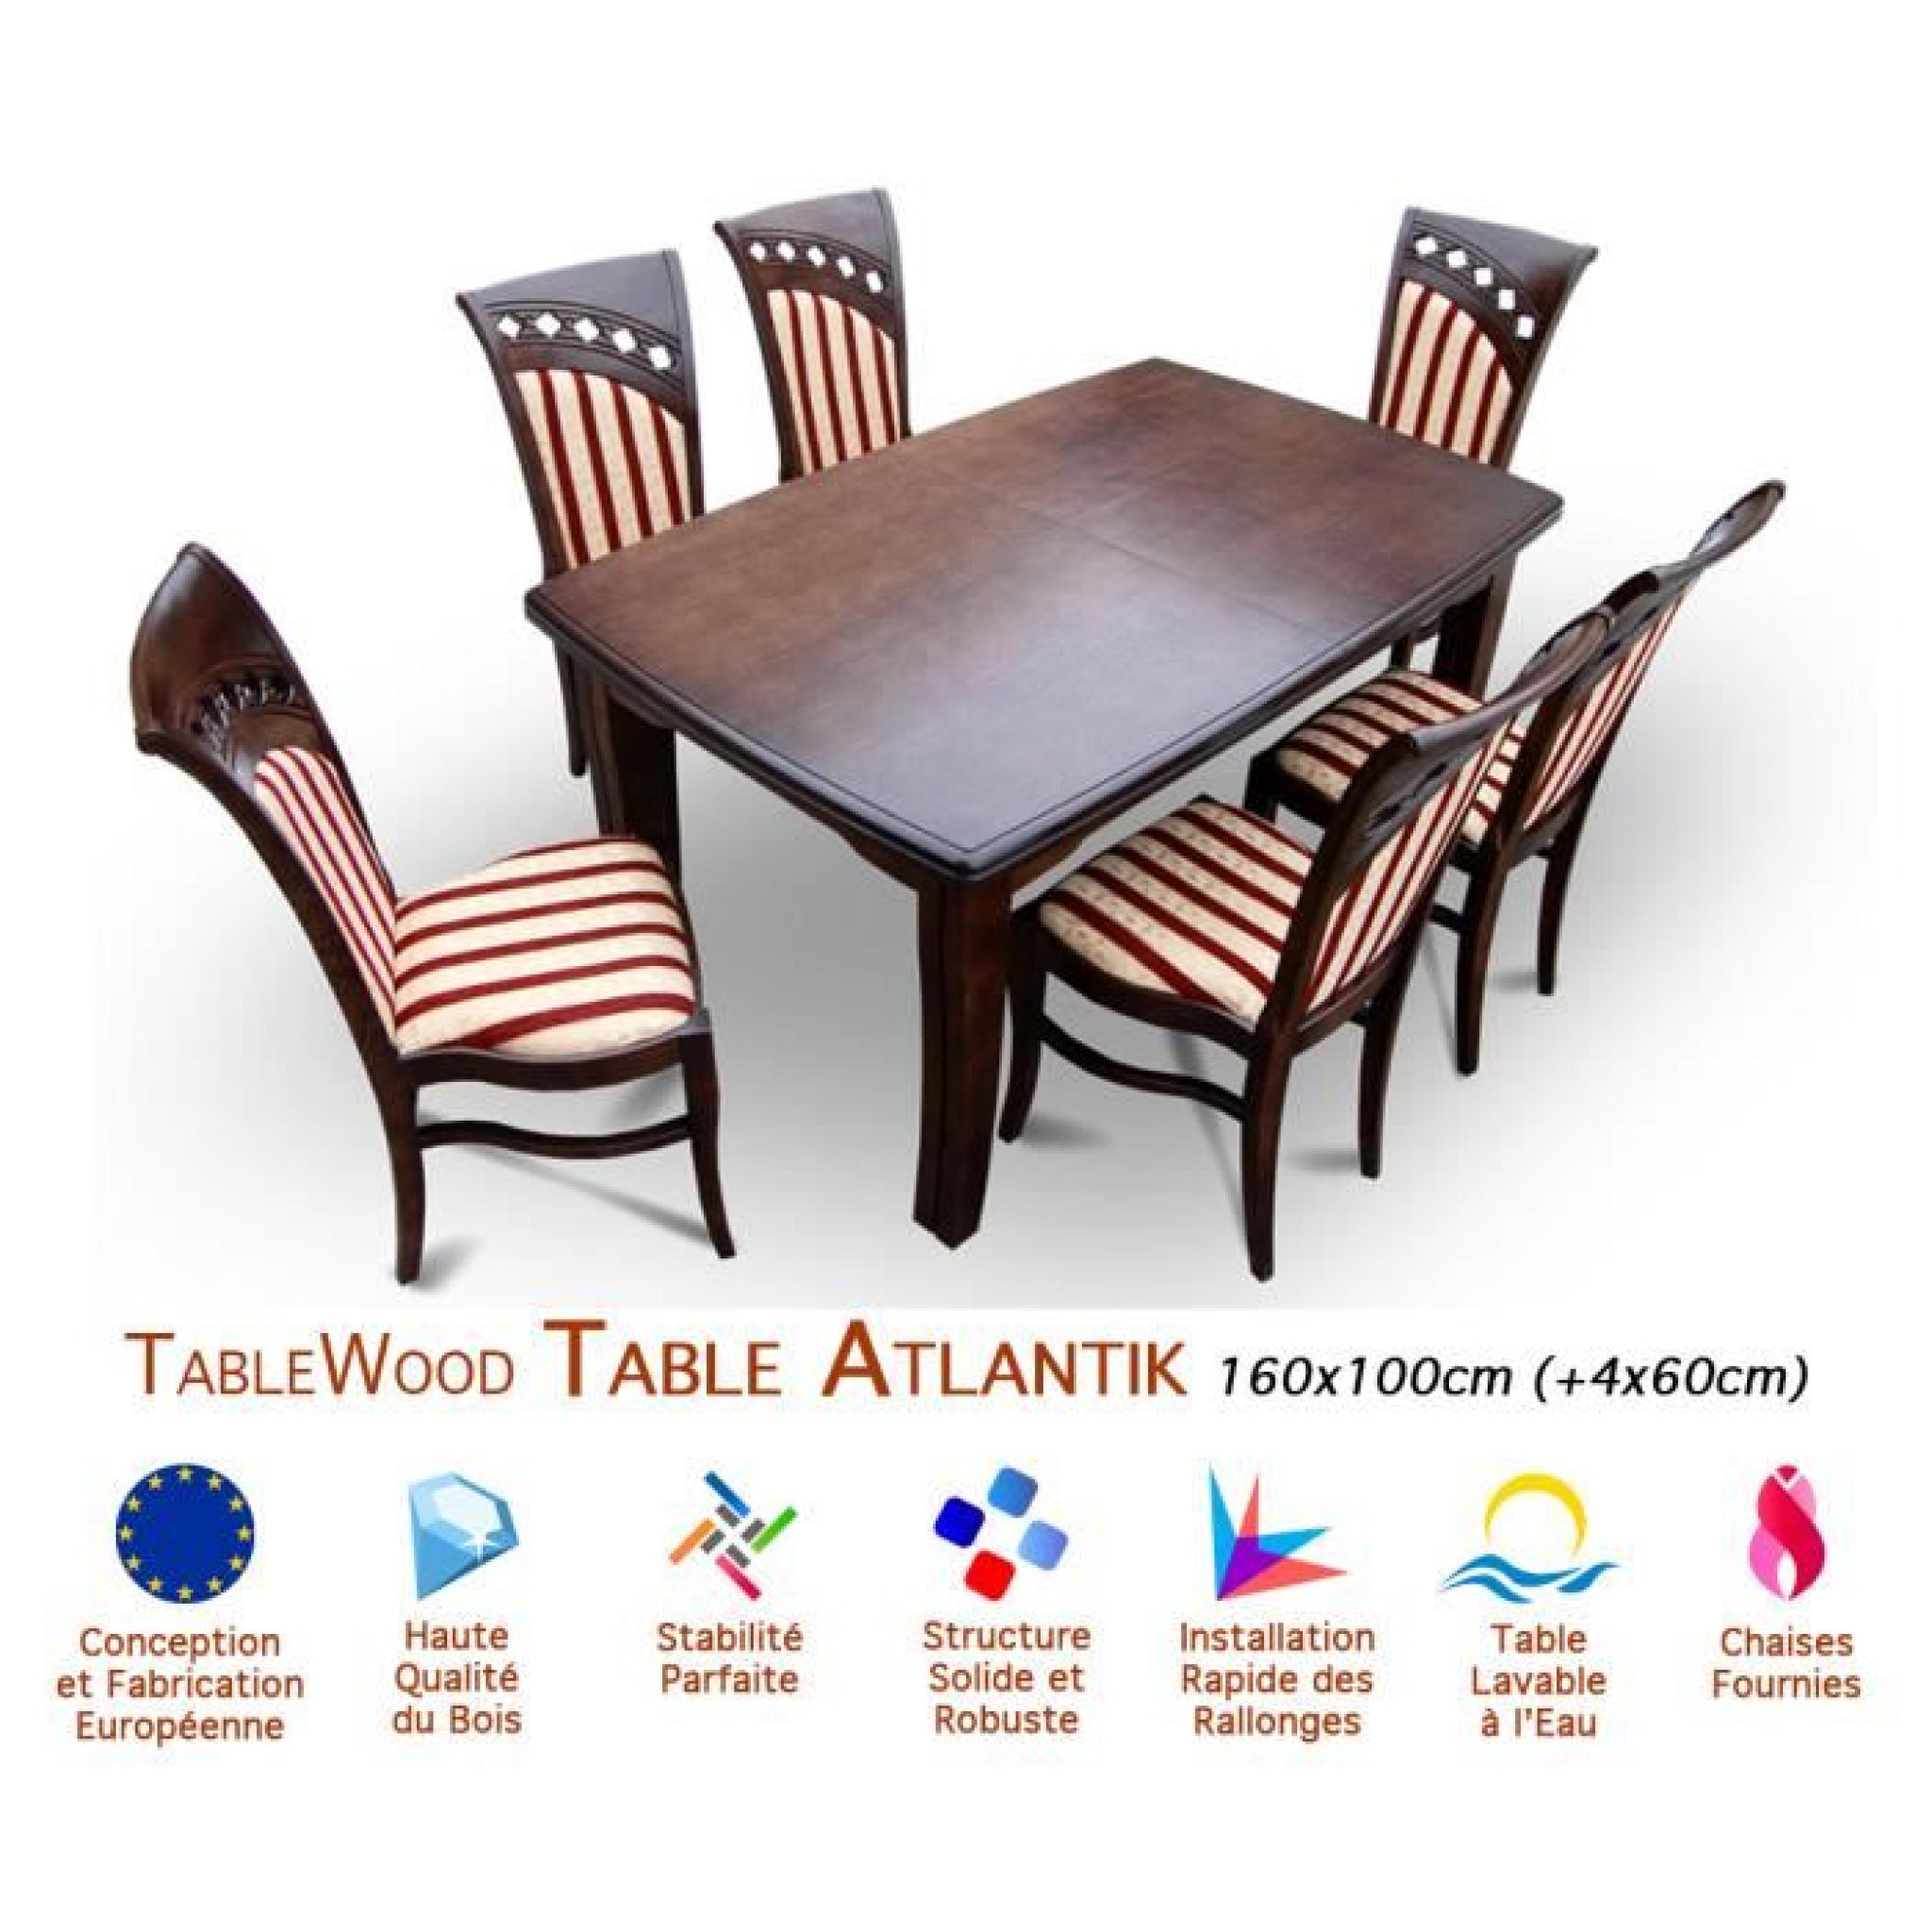 Ensemble table extensible et 6 chaises tablewood atlantik for Ensemble table 6 chaises pas cher